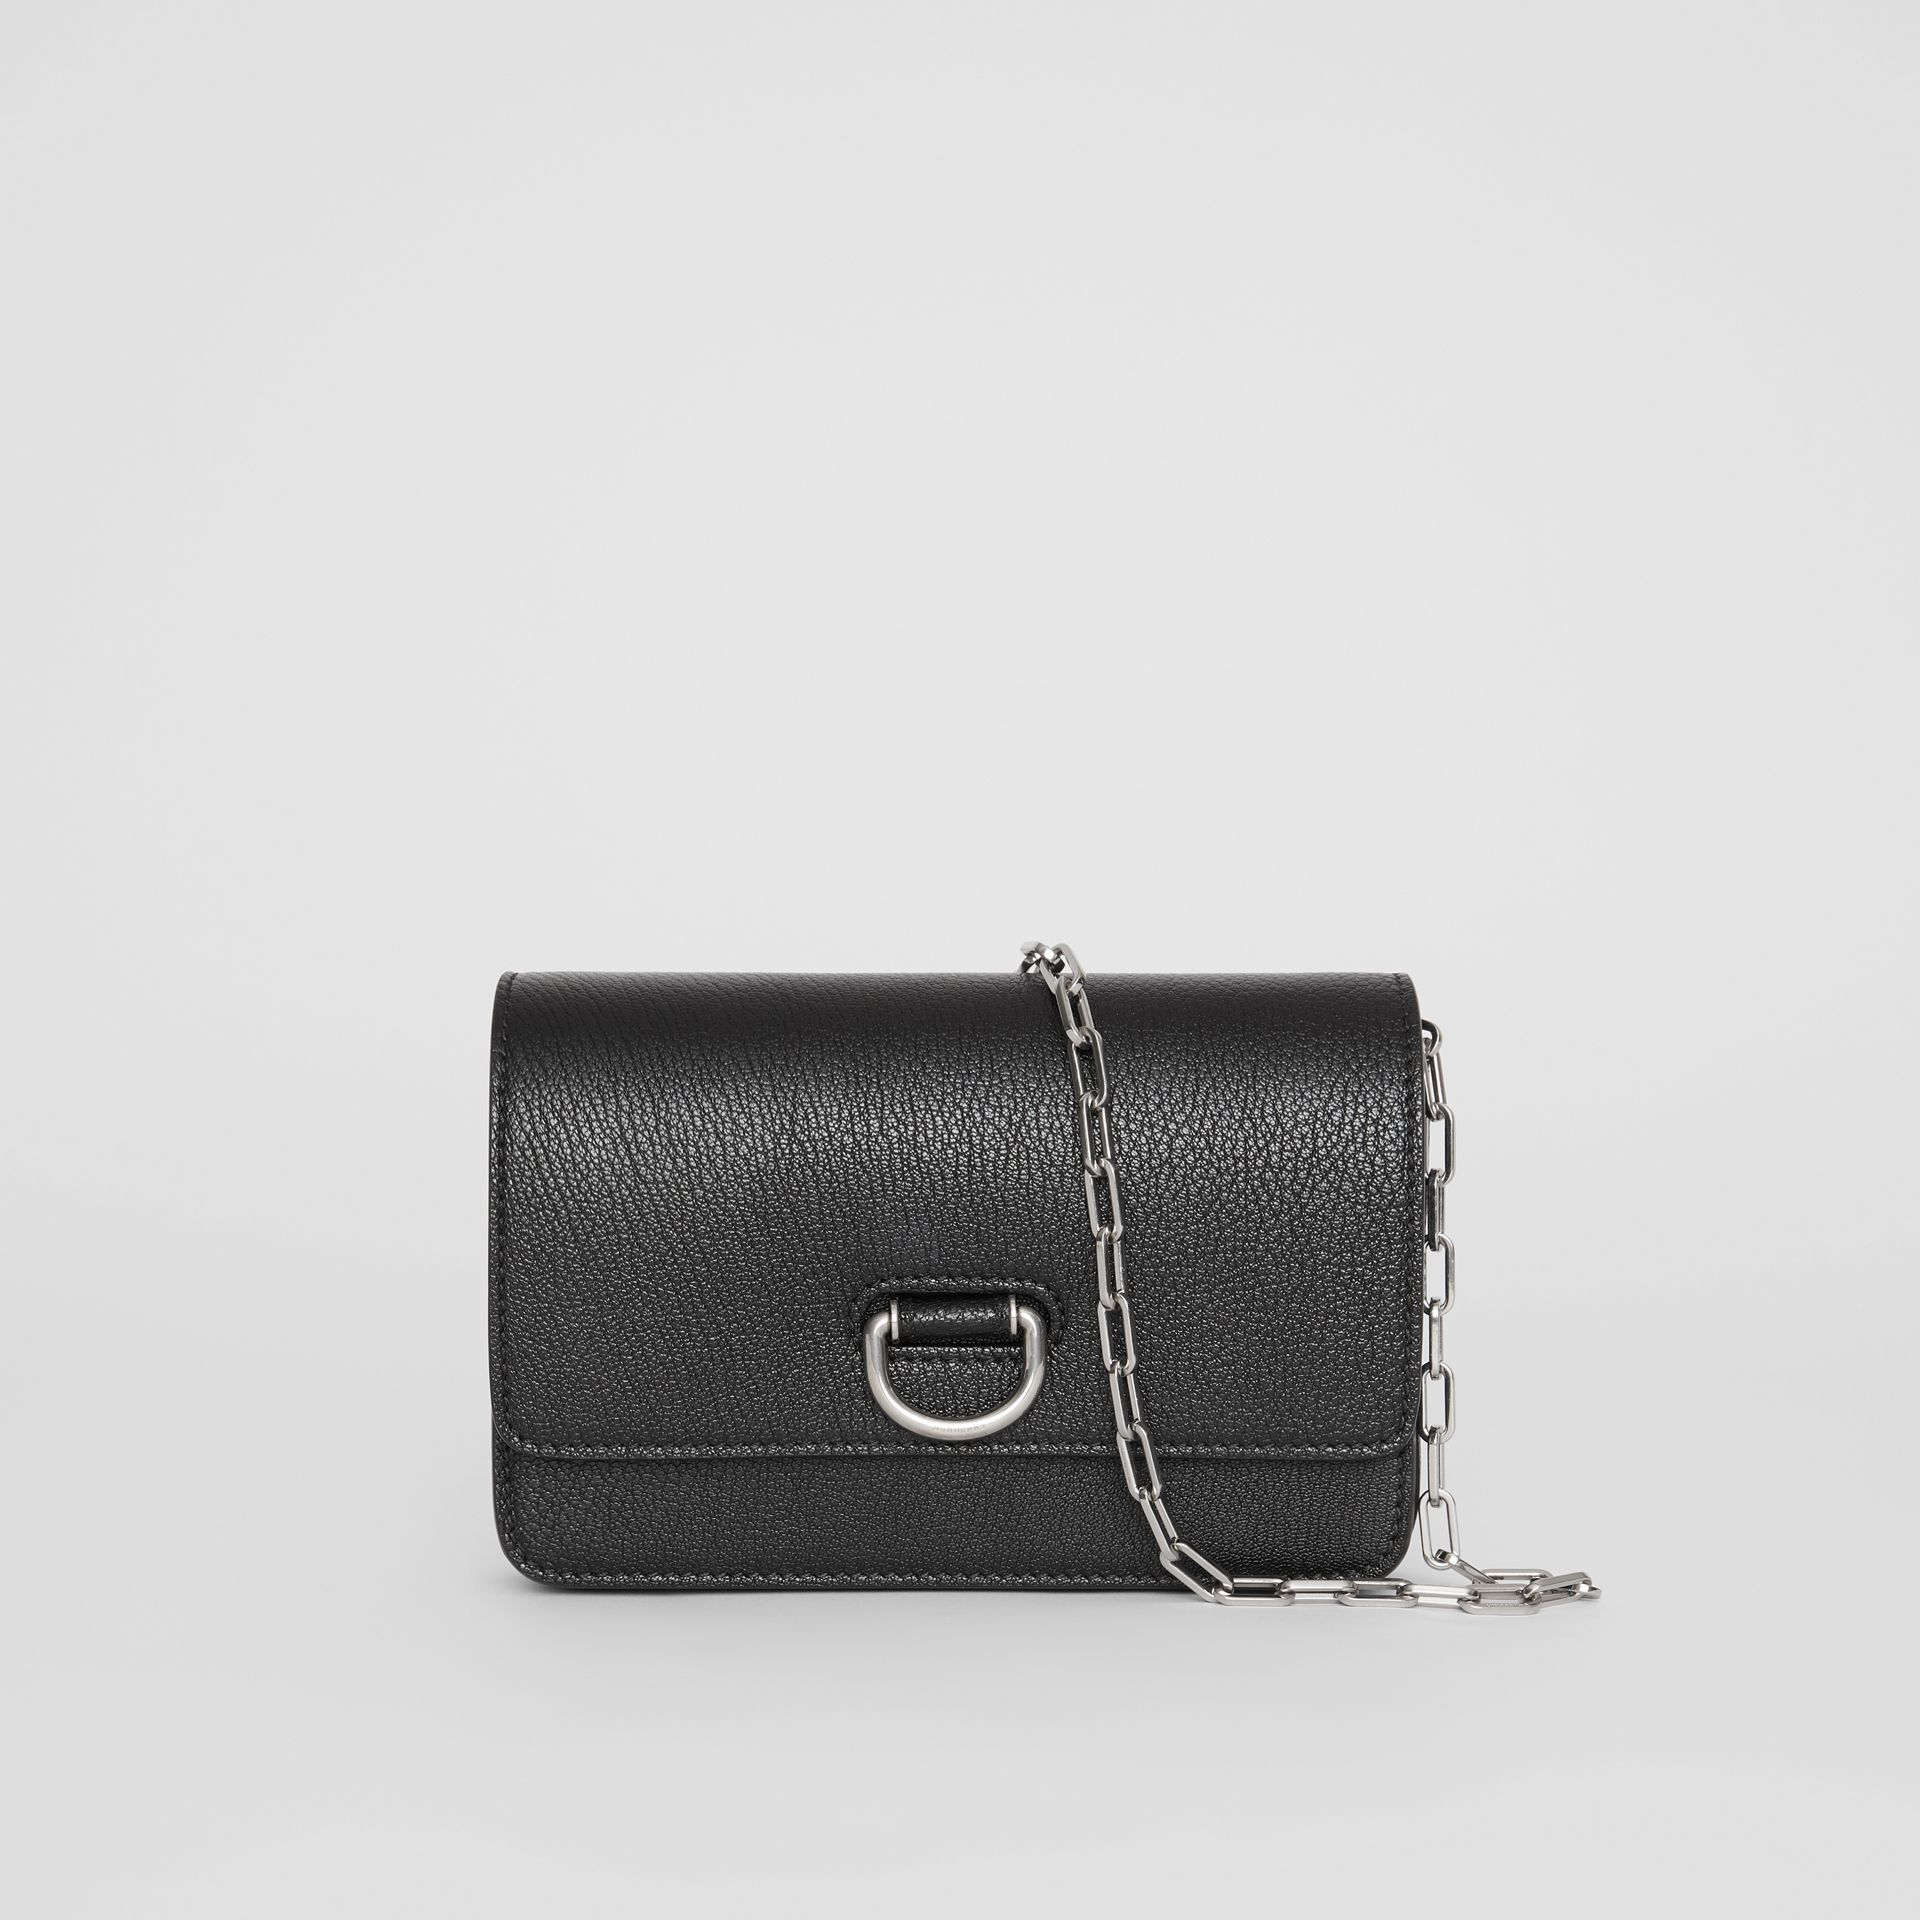 Mini sac The D-ring en cuir (Noir) - Femme | Burberry Canada - photo de la galerie 0